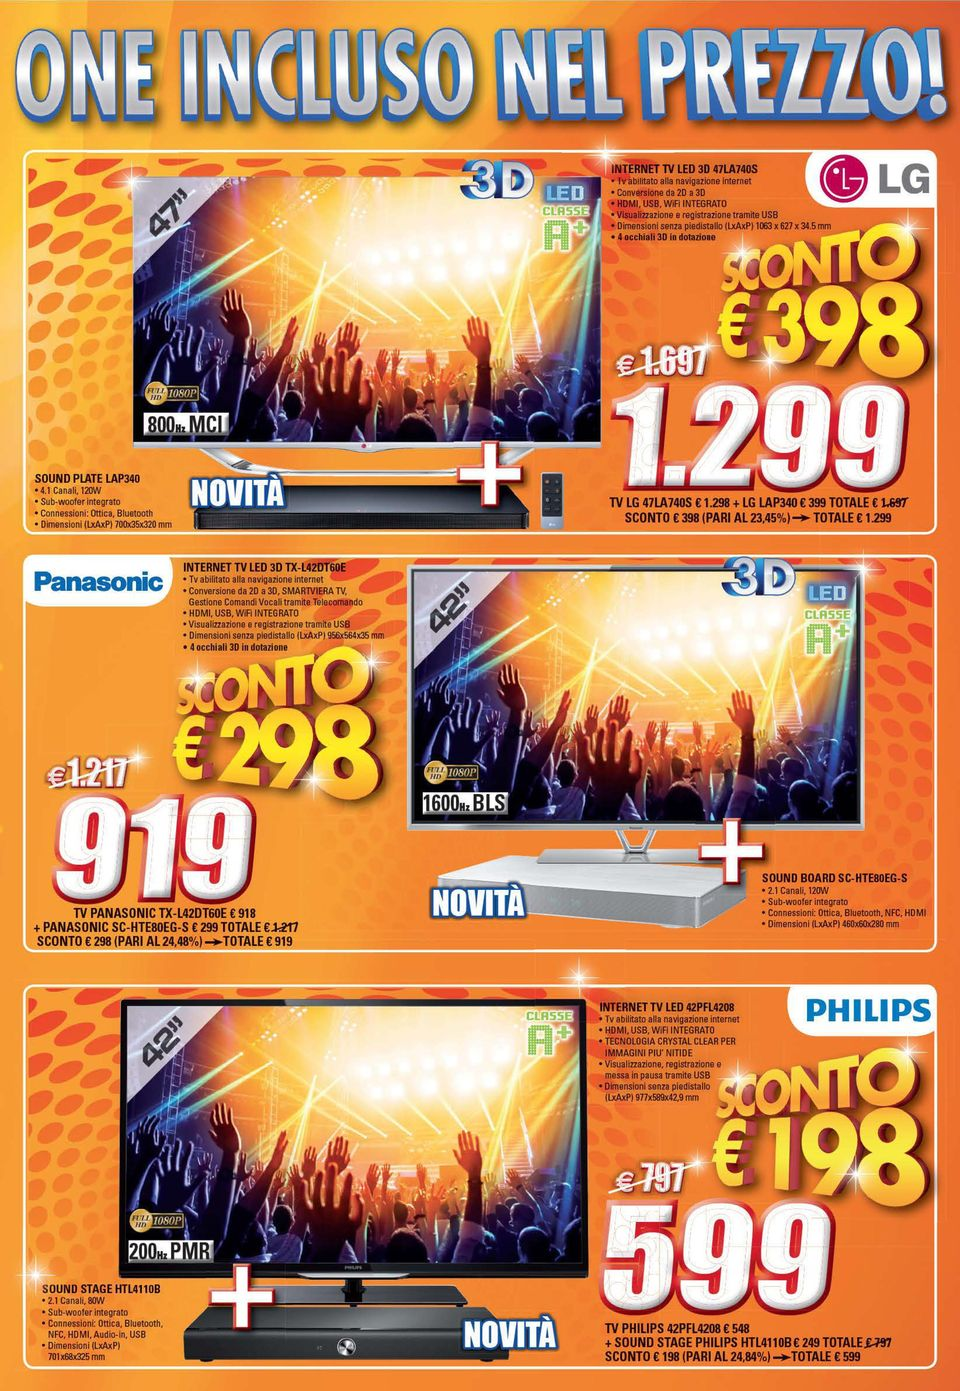 299 Panasonic INTERNET TV LED 3D...-L.